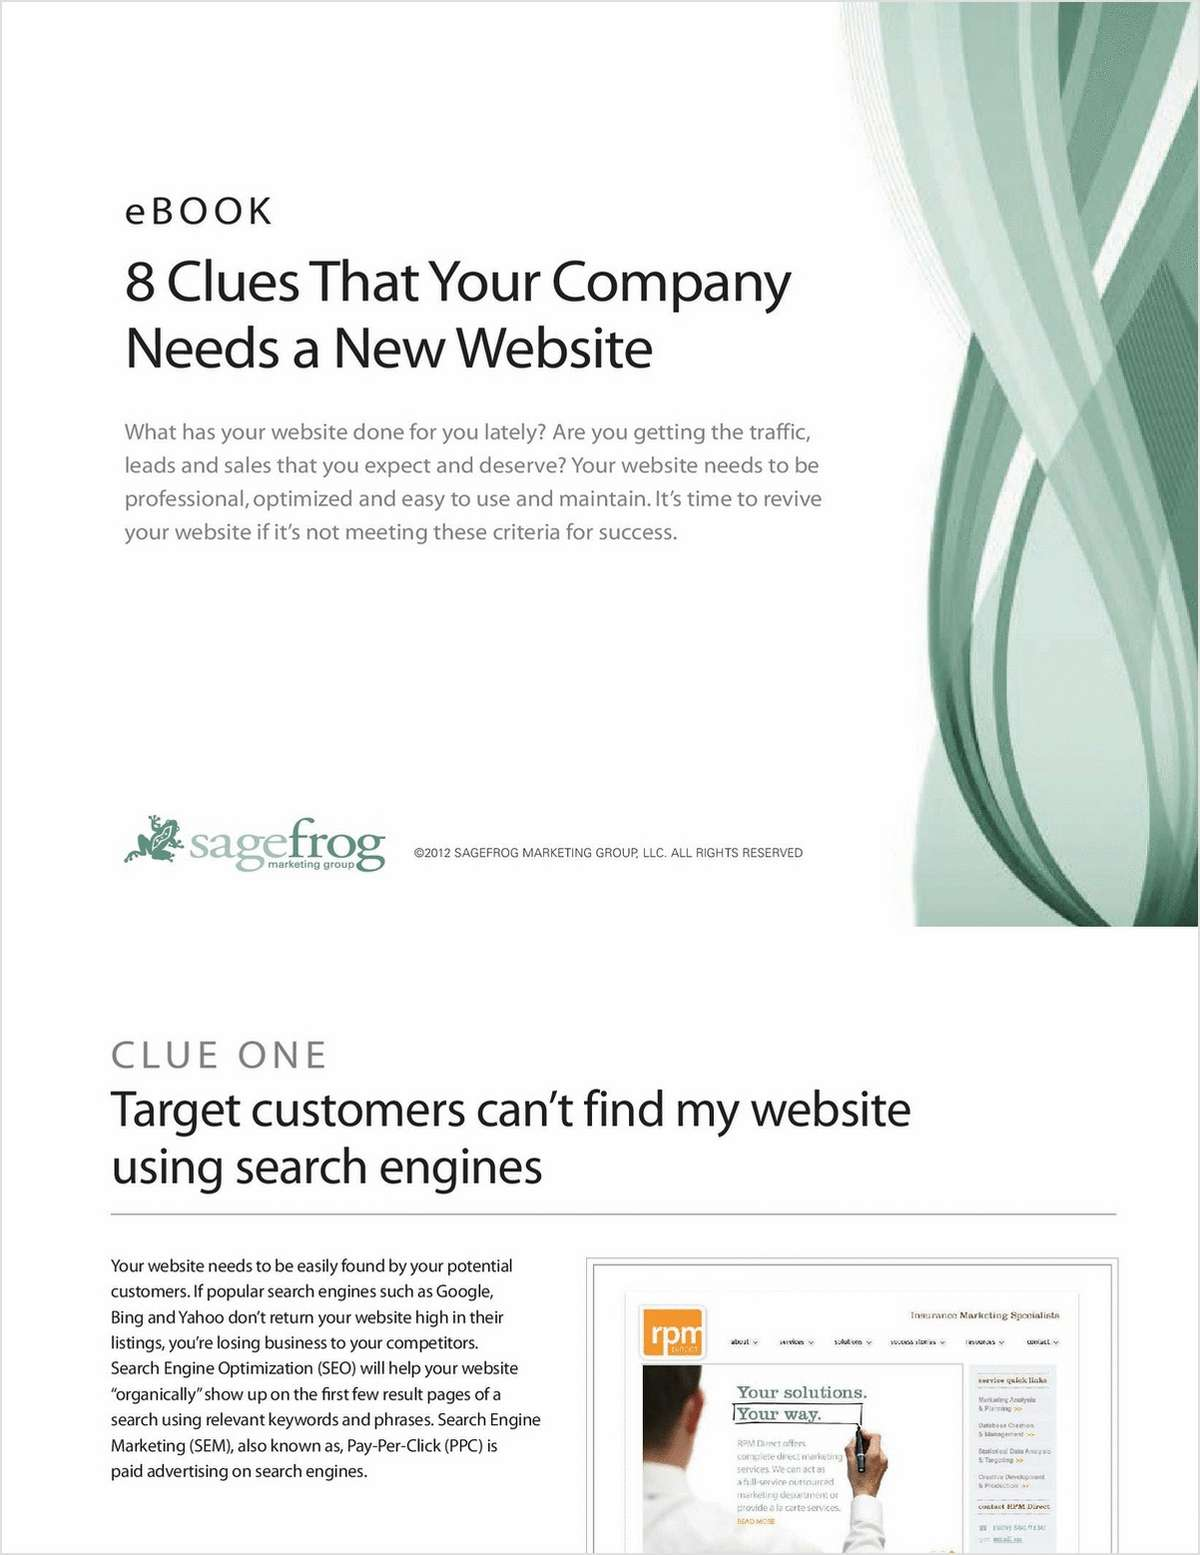 8 Clues That Your Company Needs a New Website